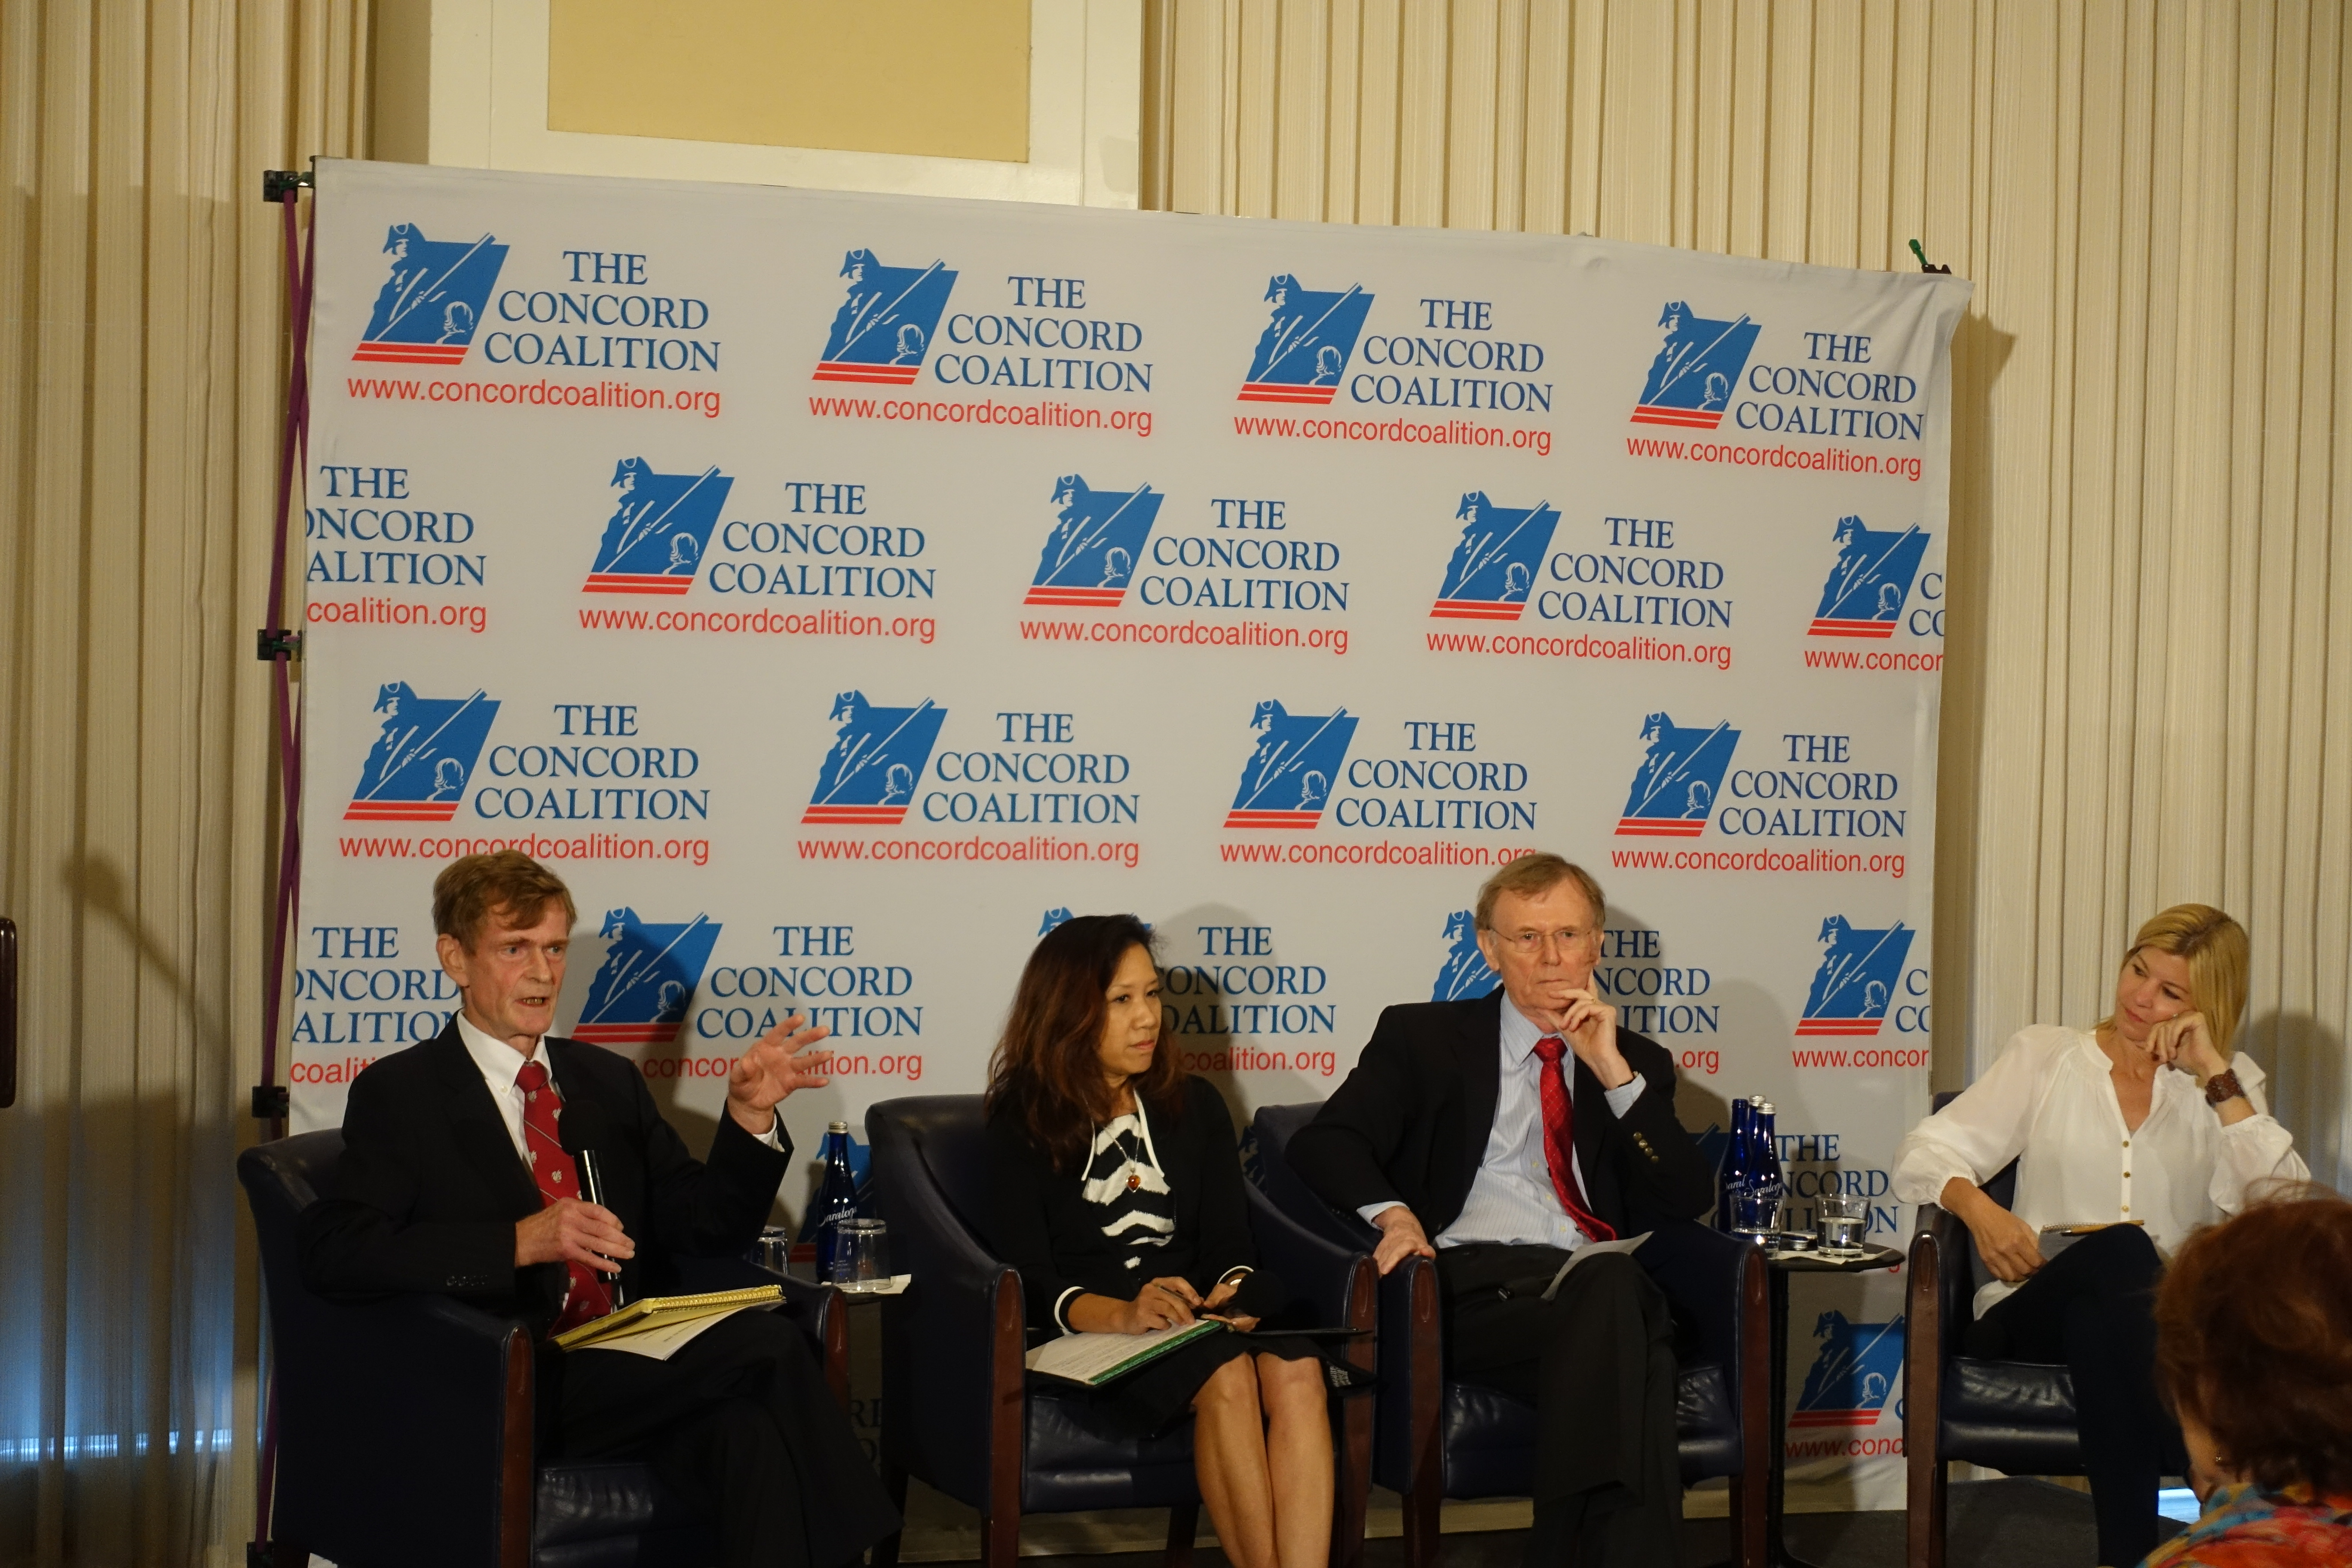 panel discusses fiscal policy